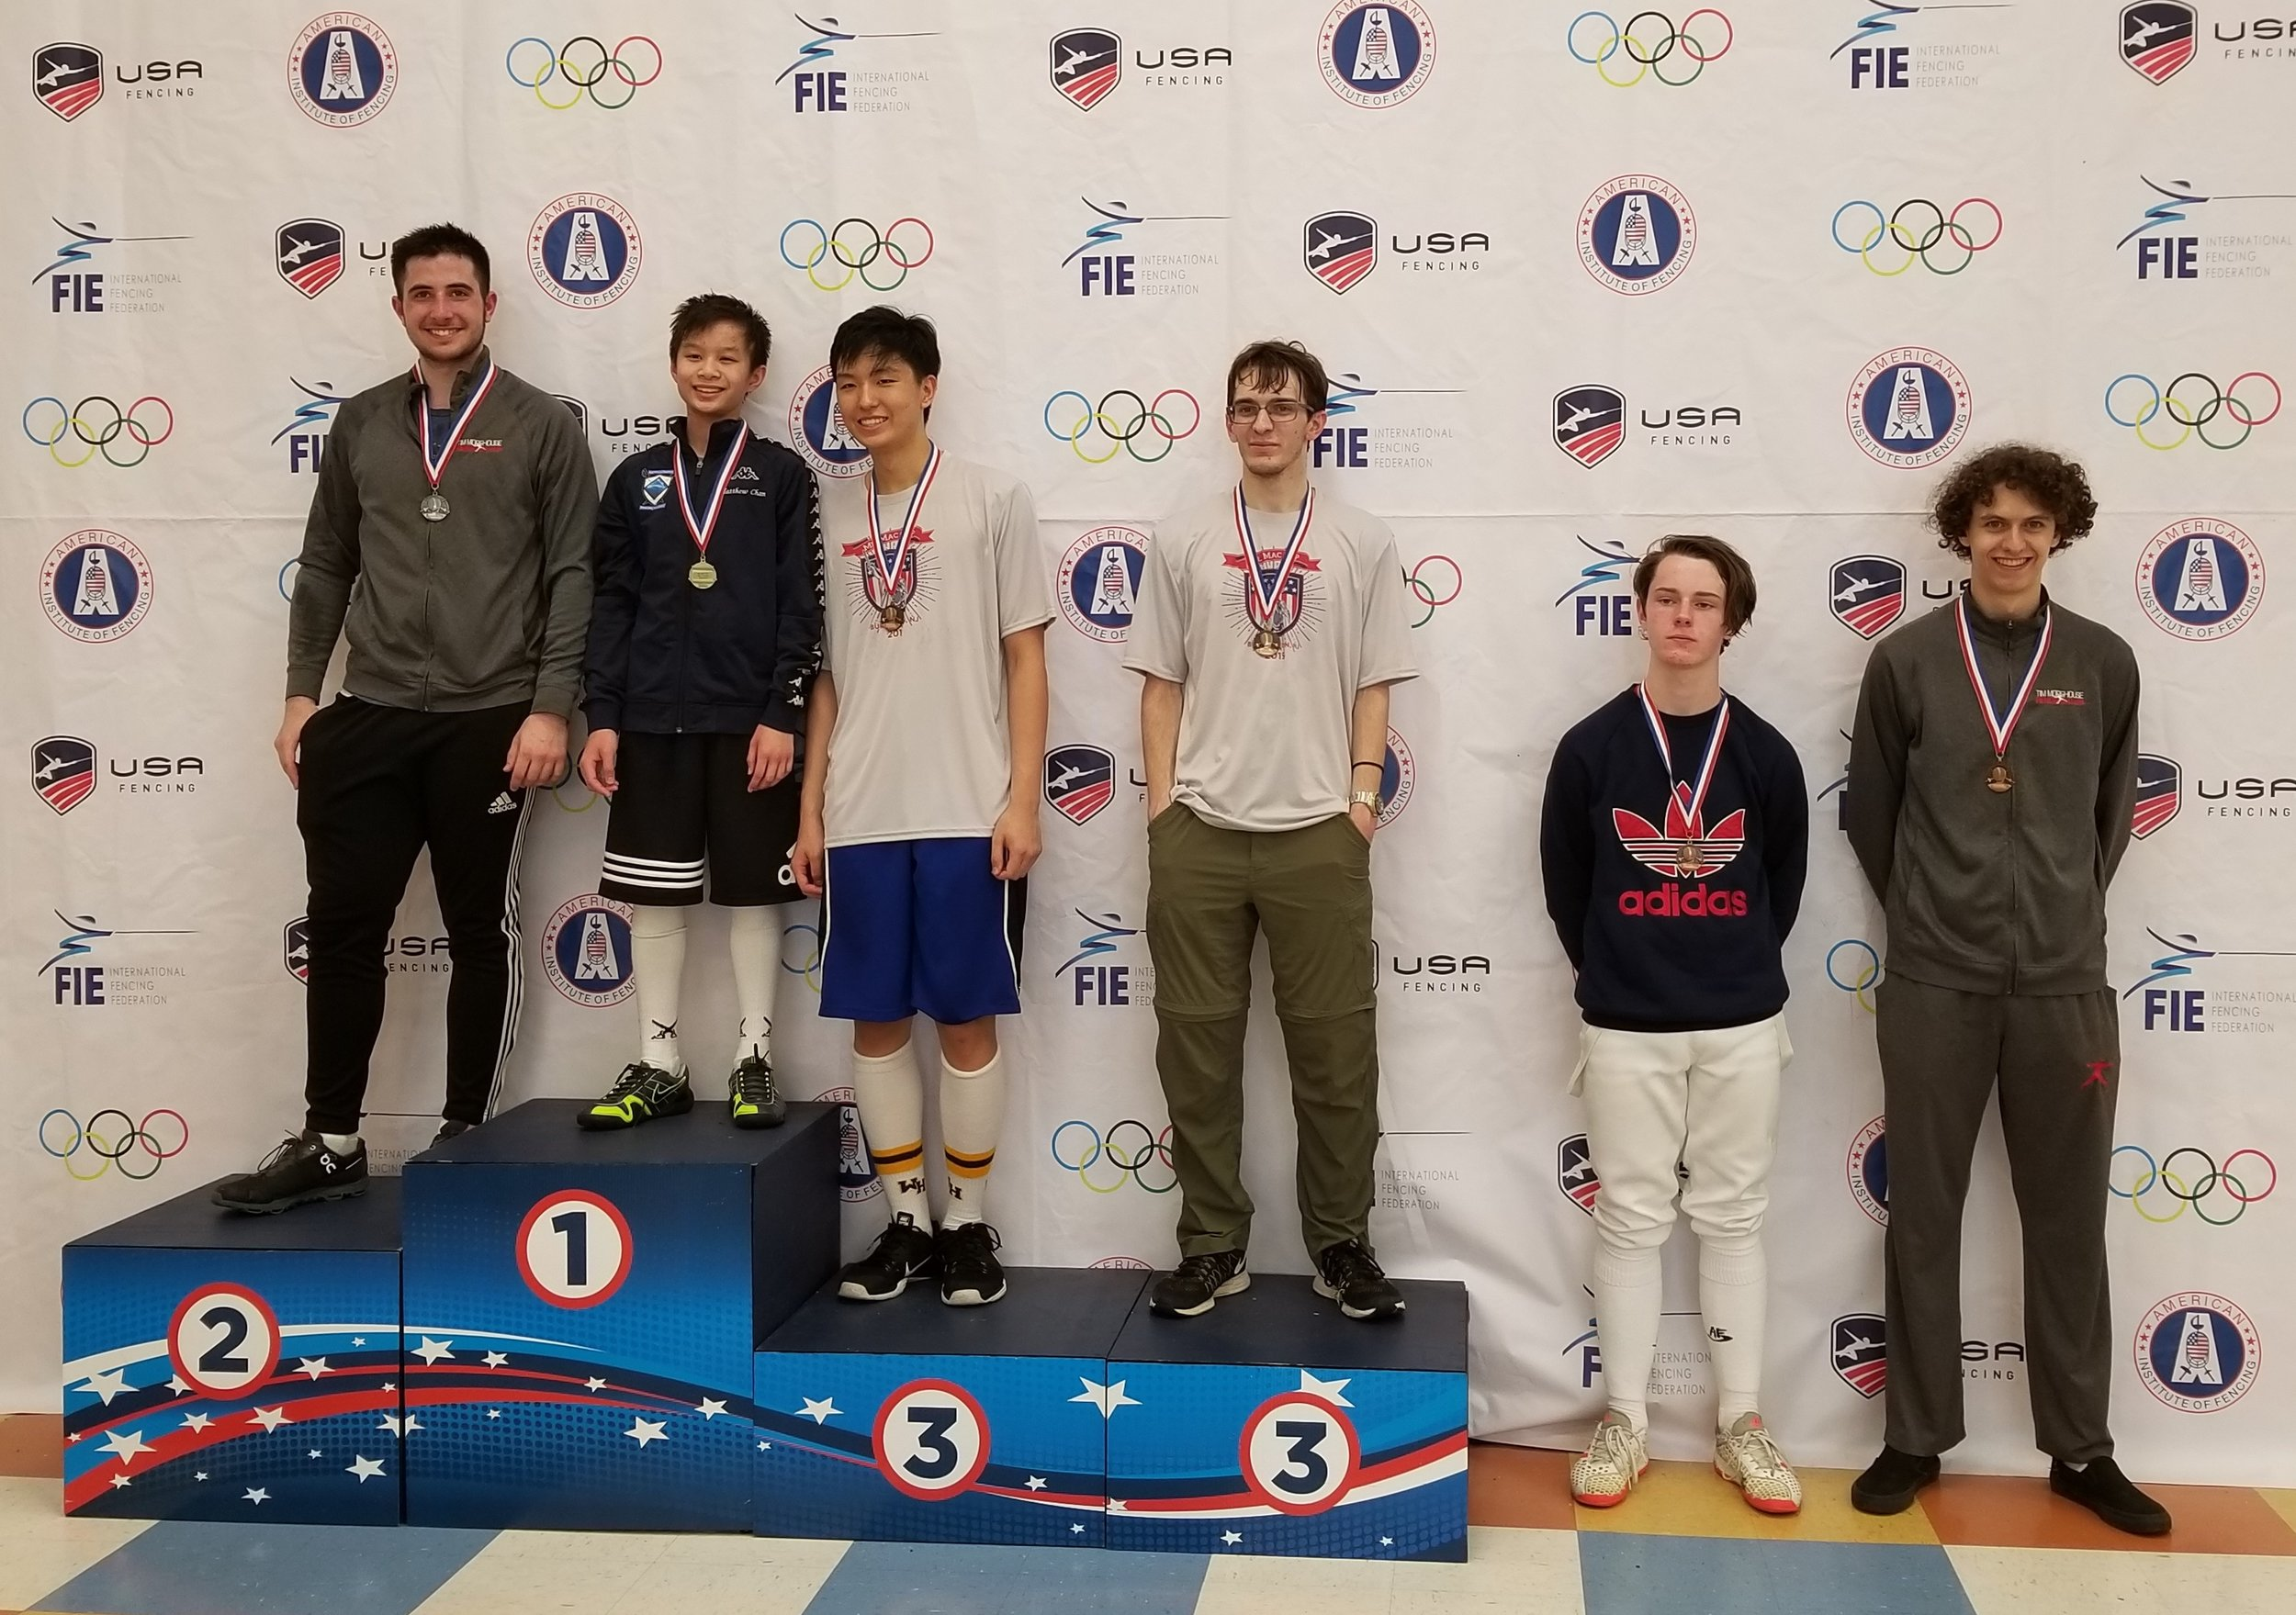 Braden Vaccari wins a Silver Medal and Scott Wyche wins a Top-8 Medal in Junior Men's Saber